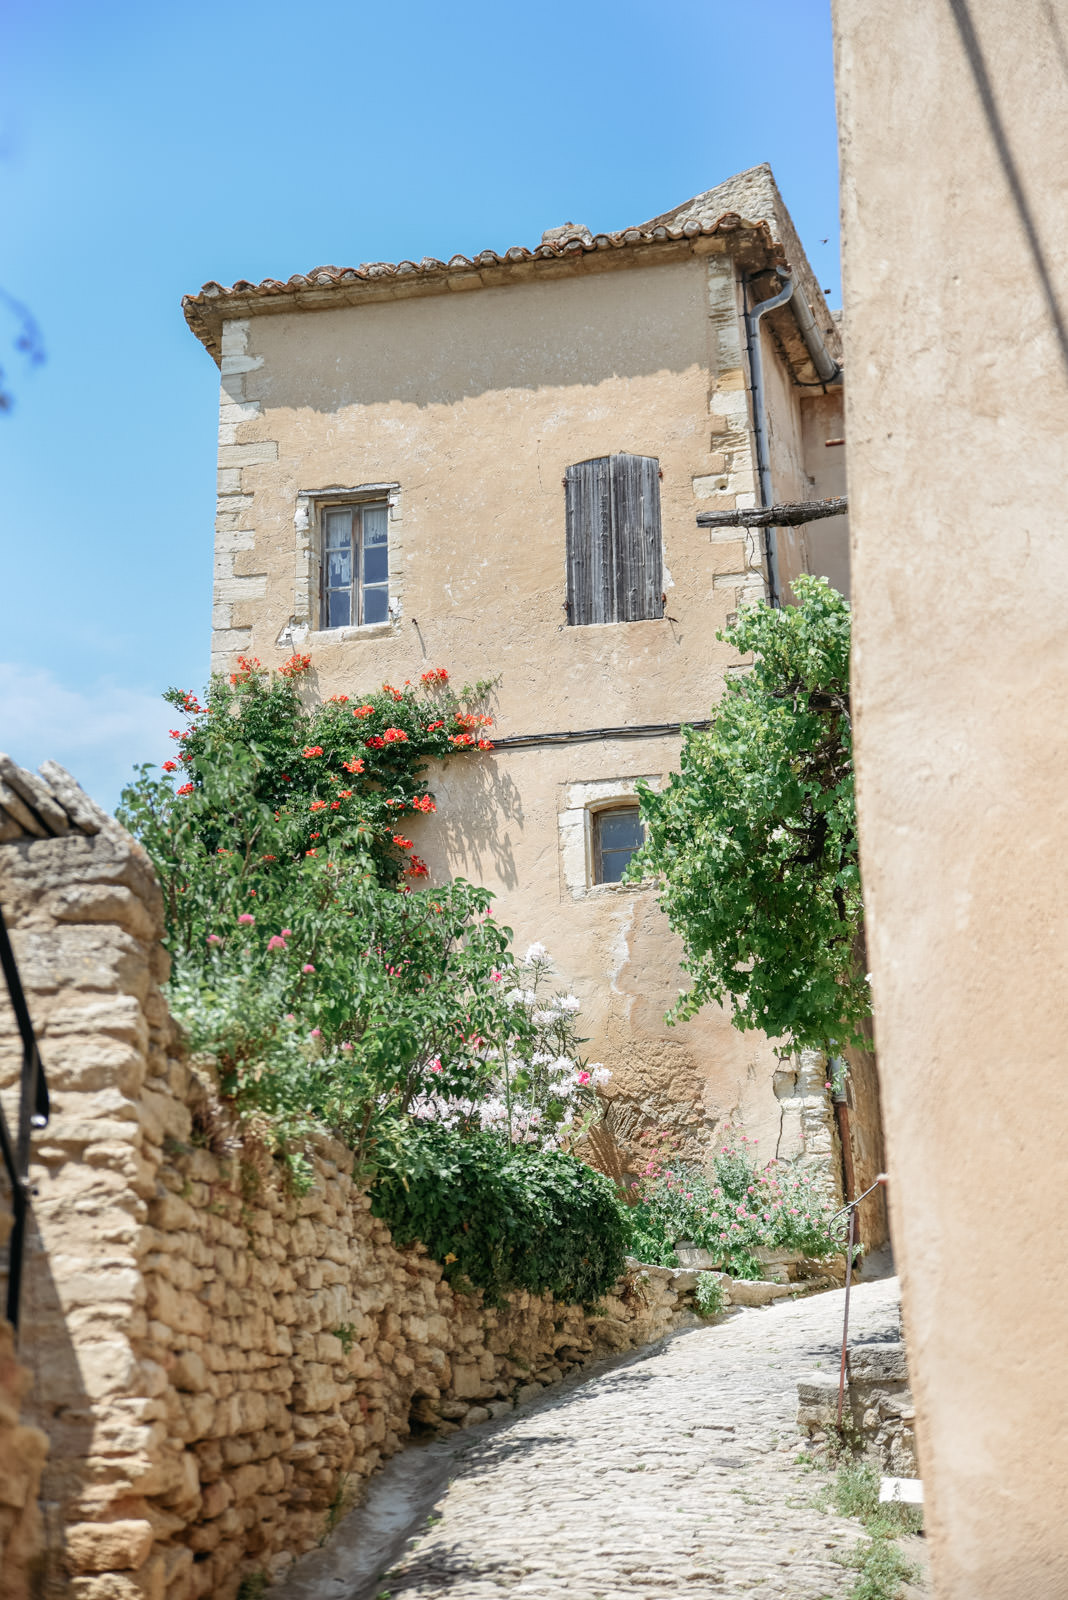 Blog-Mode-And-The-City-Lifestyle-Provence-Voyage-Gordes-12